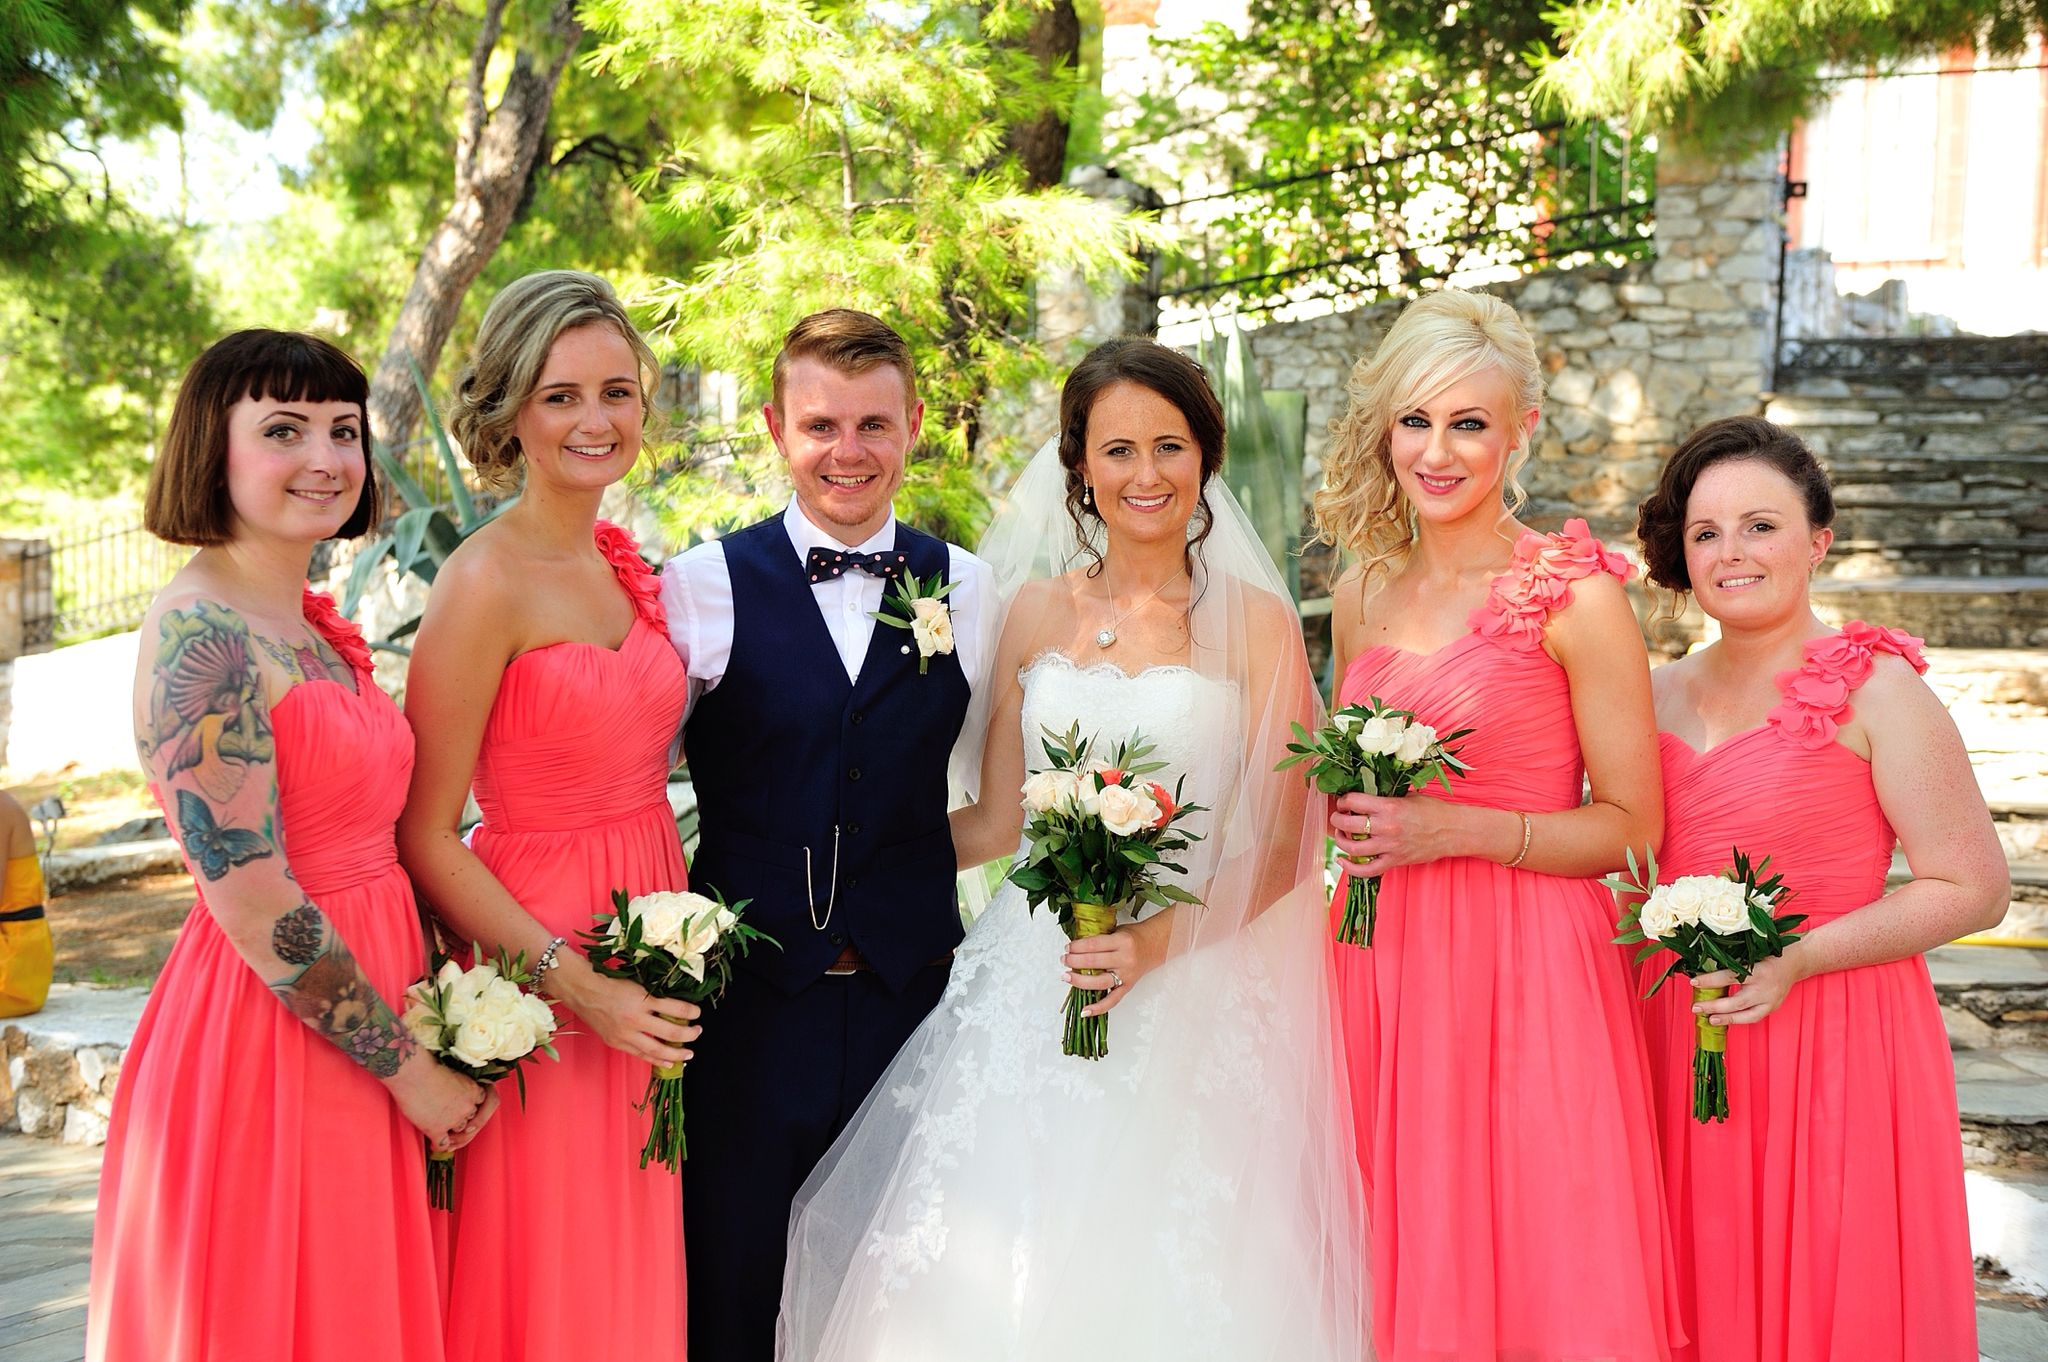 Bridesmaids! Skiathos, Greece wedding